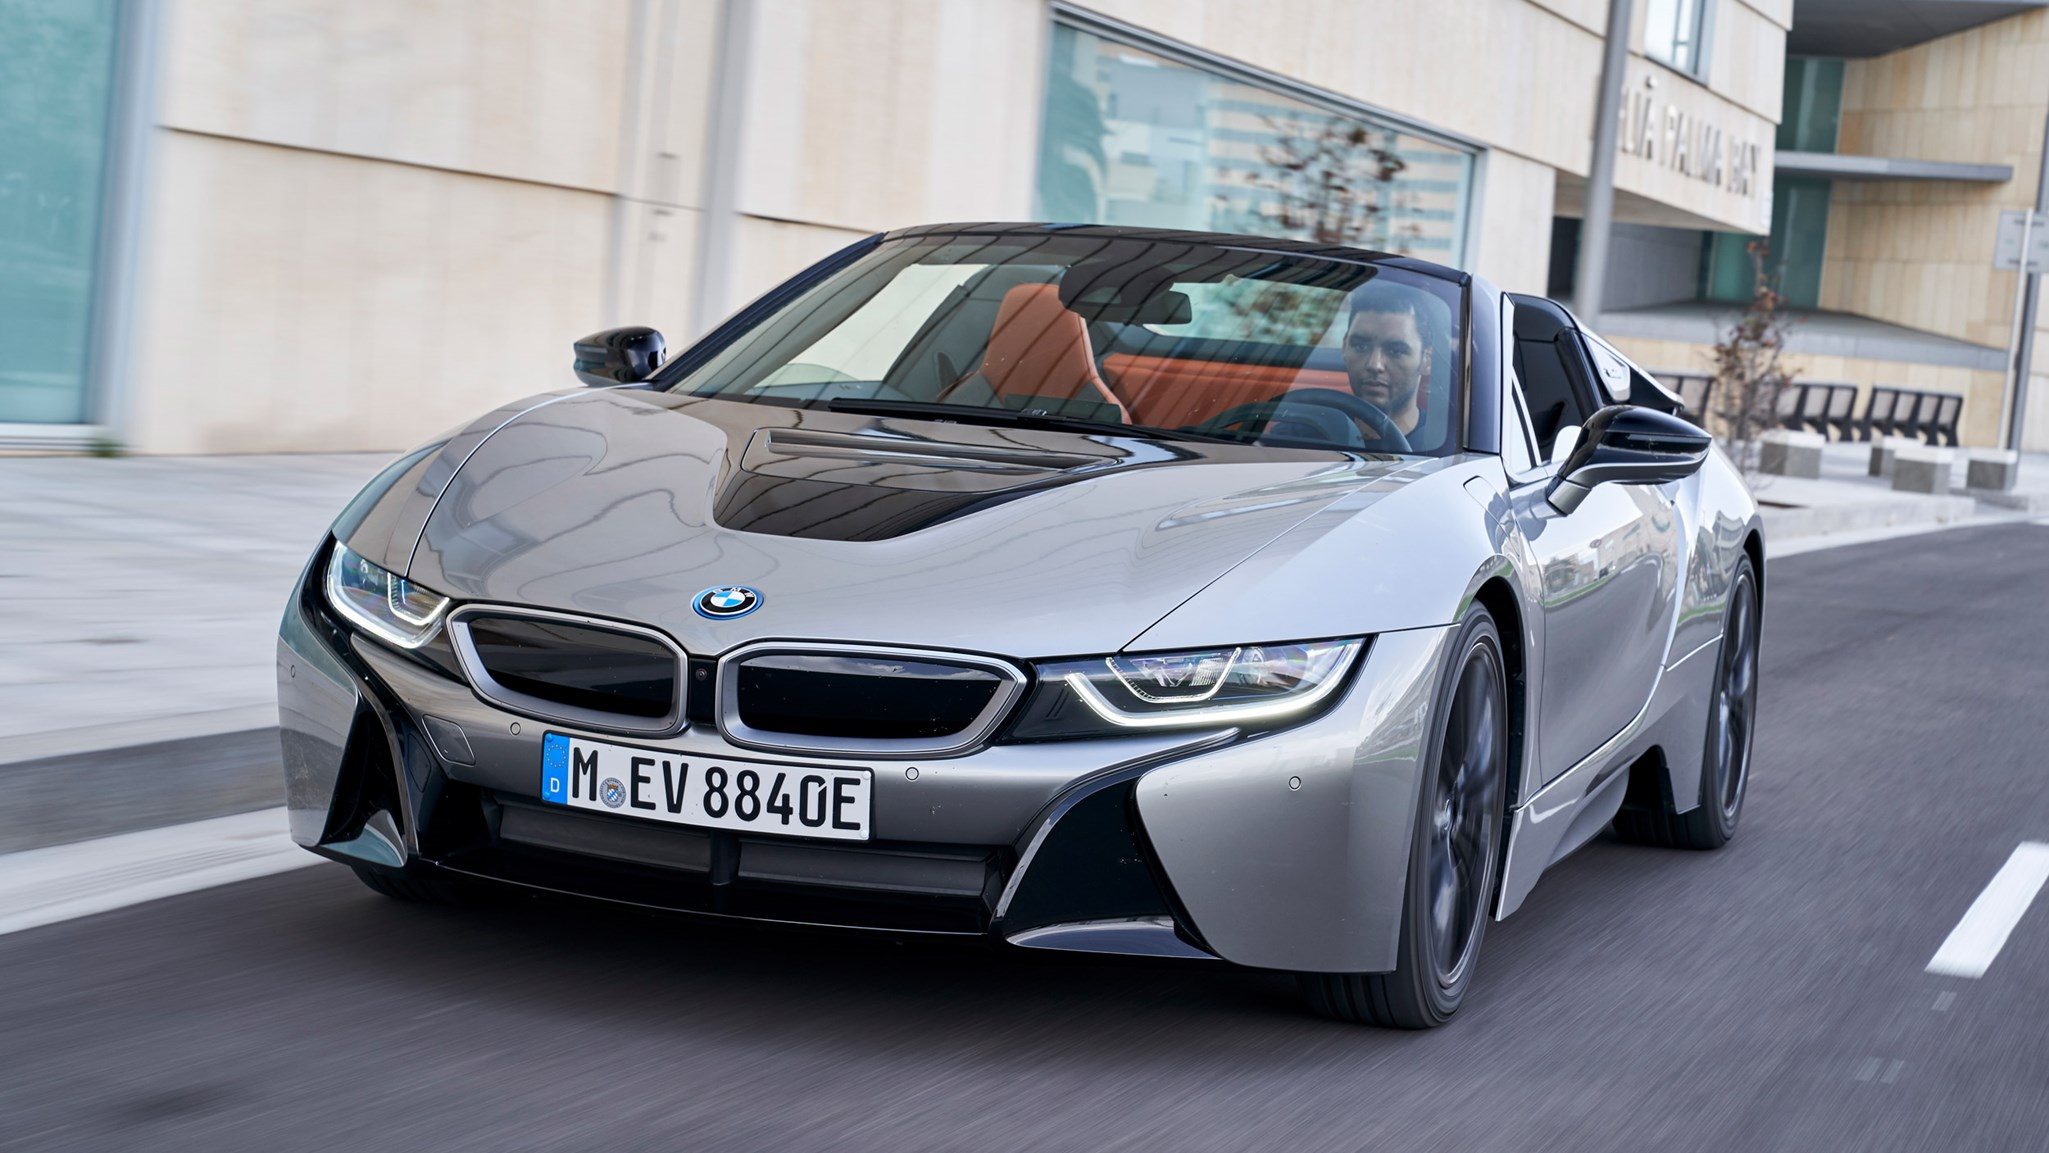 Bmw I8 Roadster Review The Hybrid Supercar Refined Car Magazine